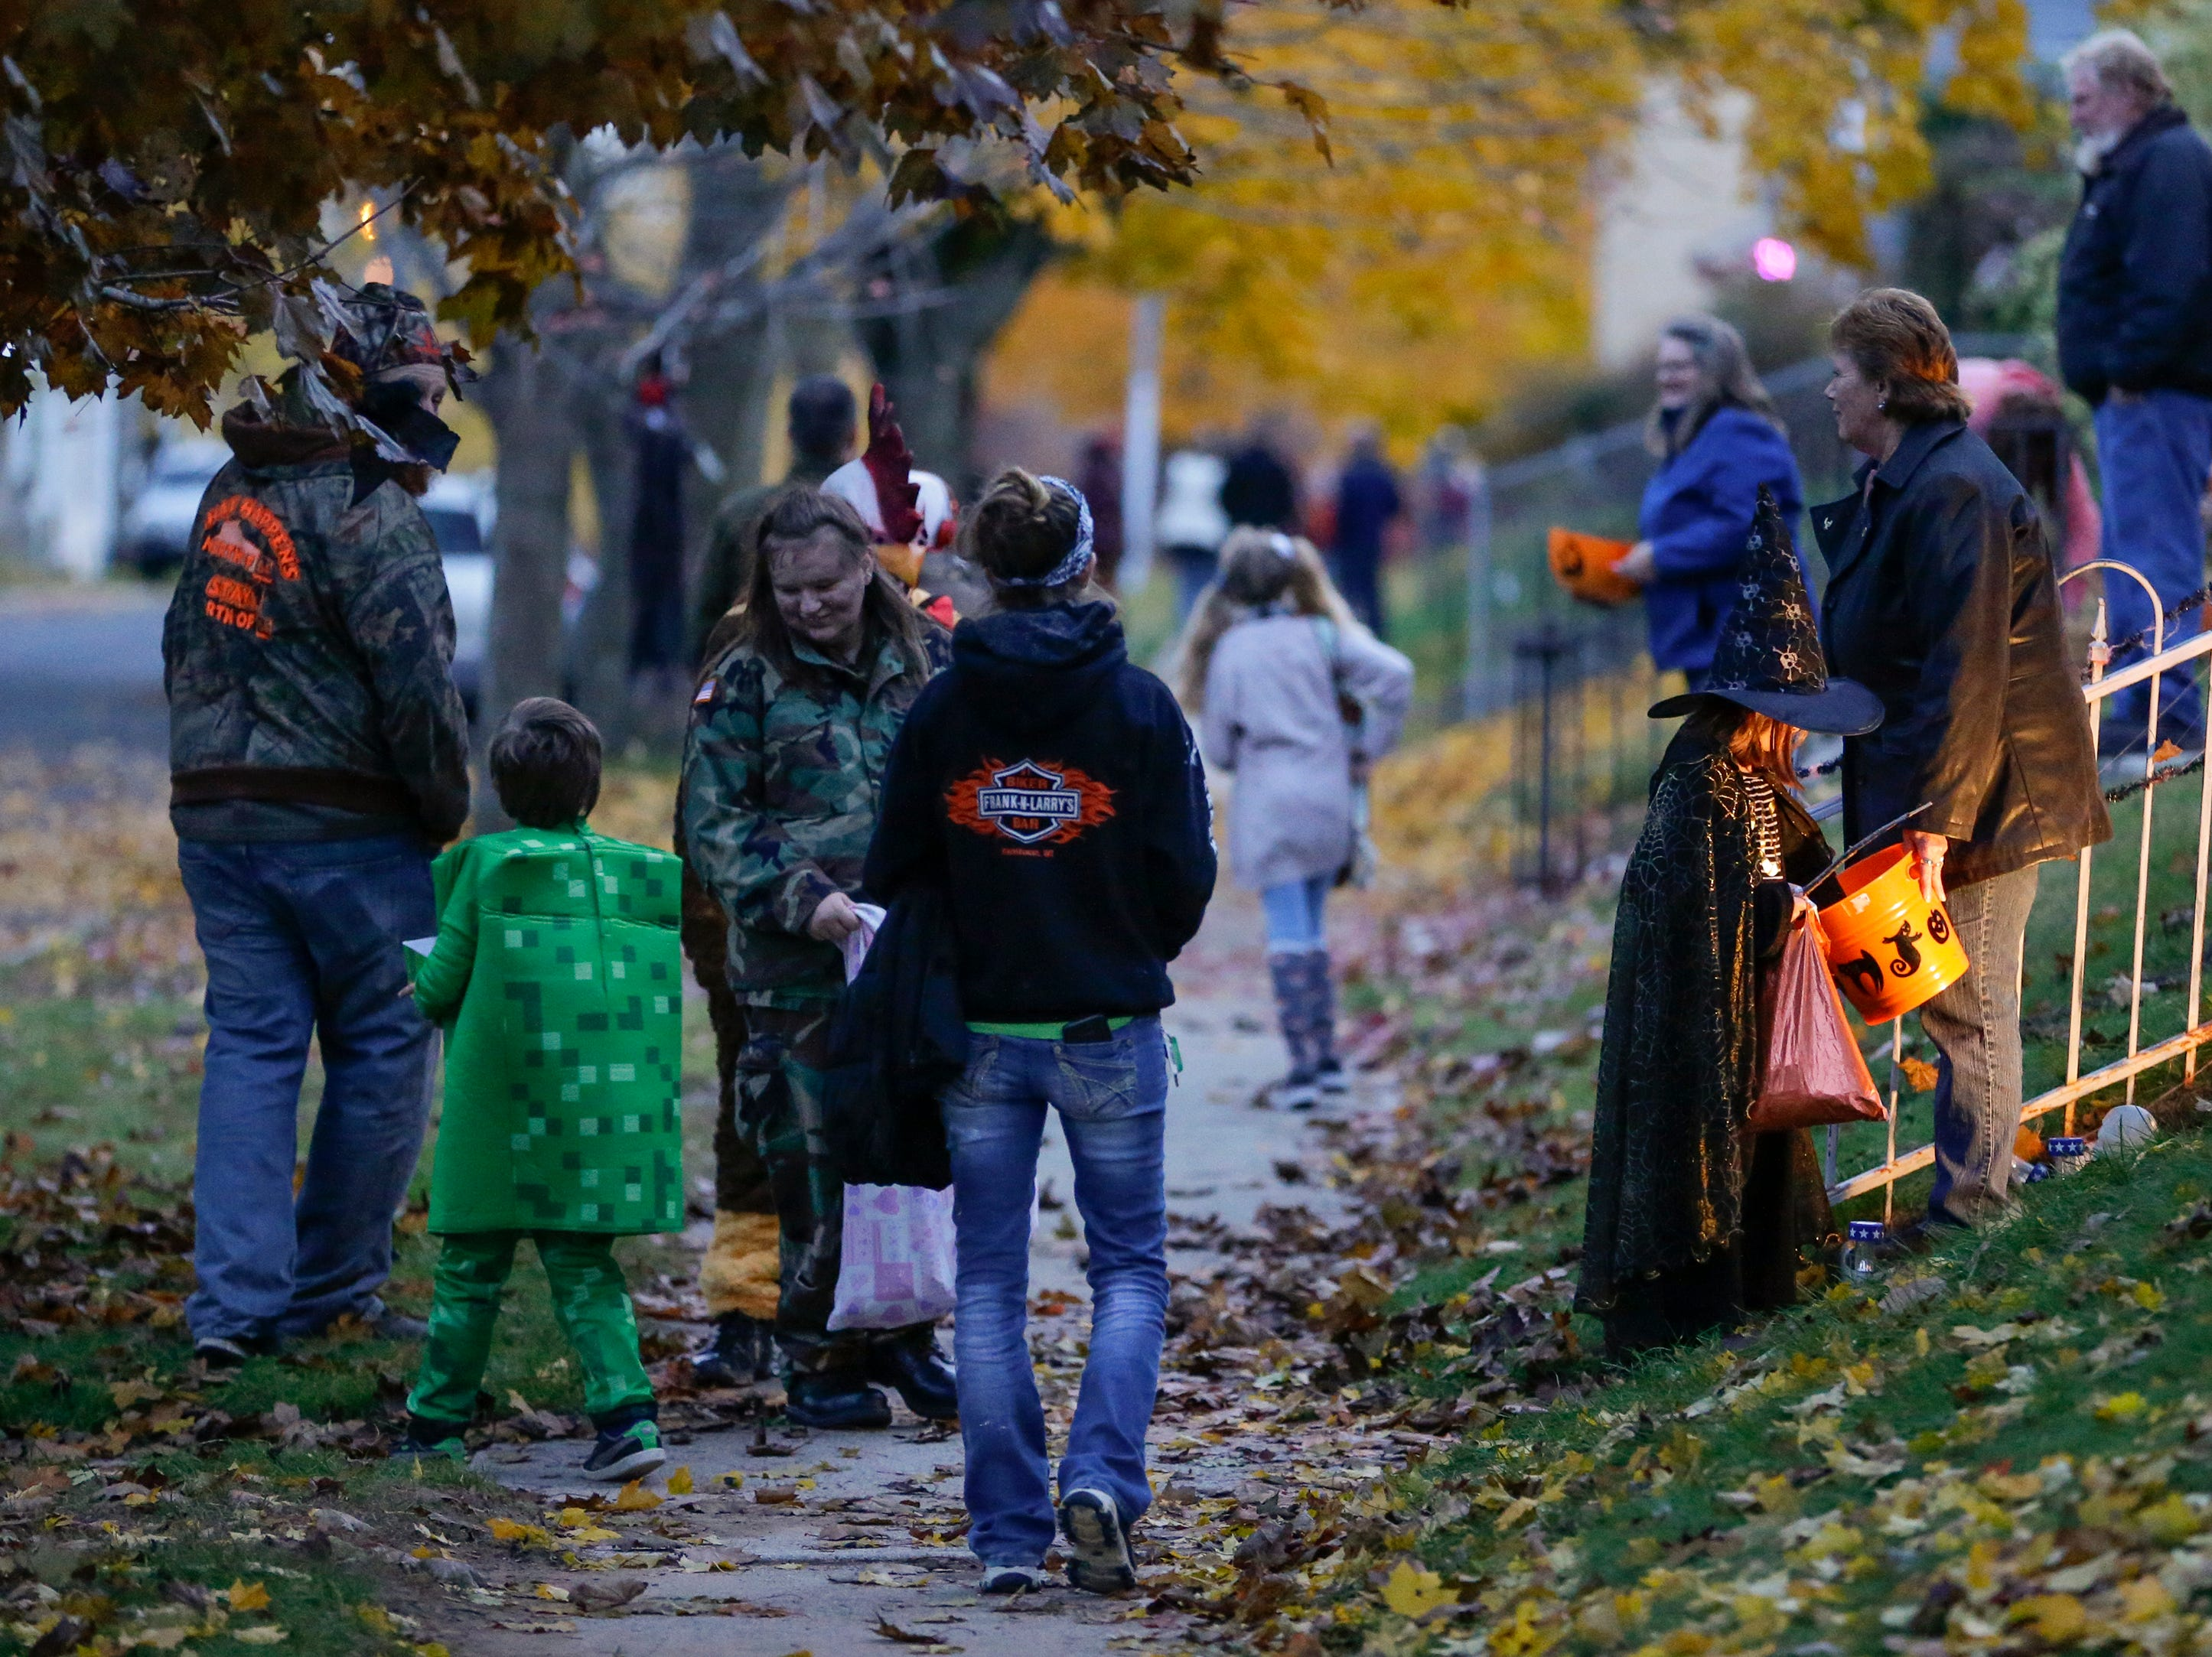 Kids trick or treat on Halloween Wednesday, October 31, 2018, in Manitowoc, Wis. Joshua Clark/USA TODAY NETWORK-Wisconsin